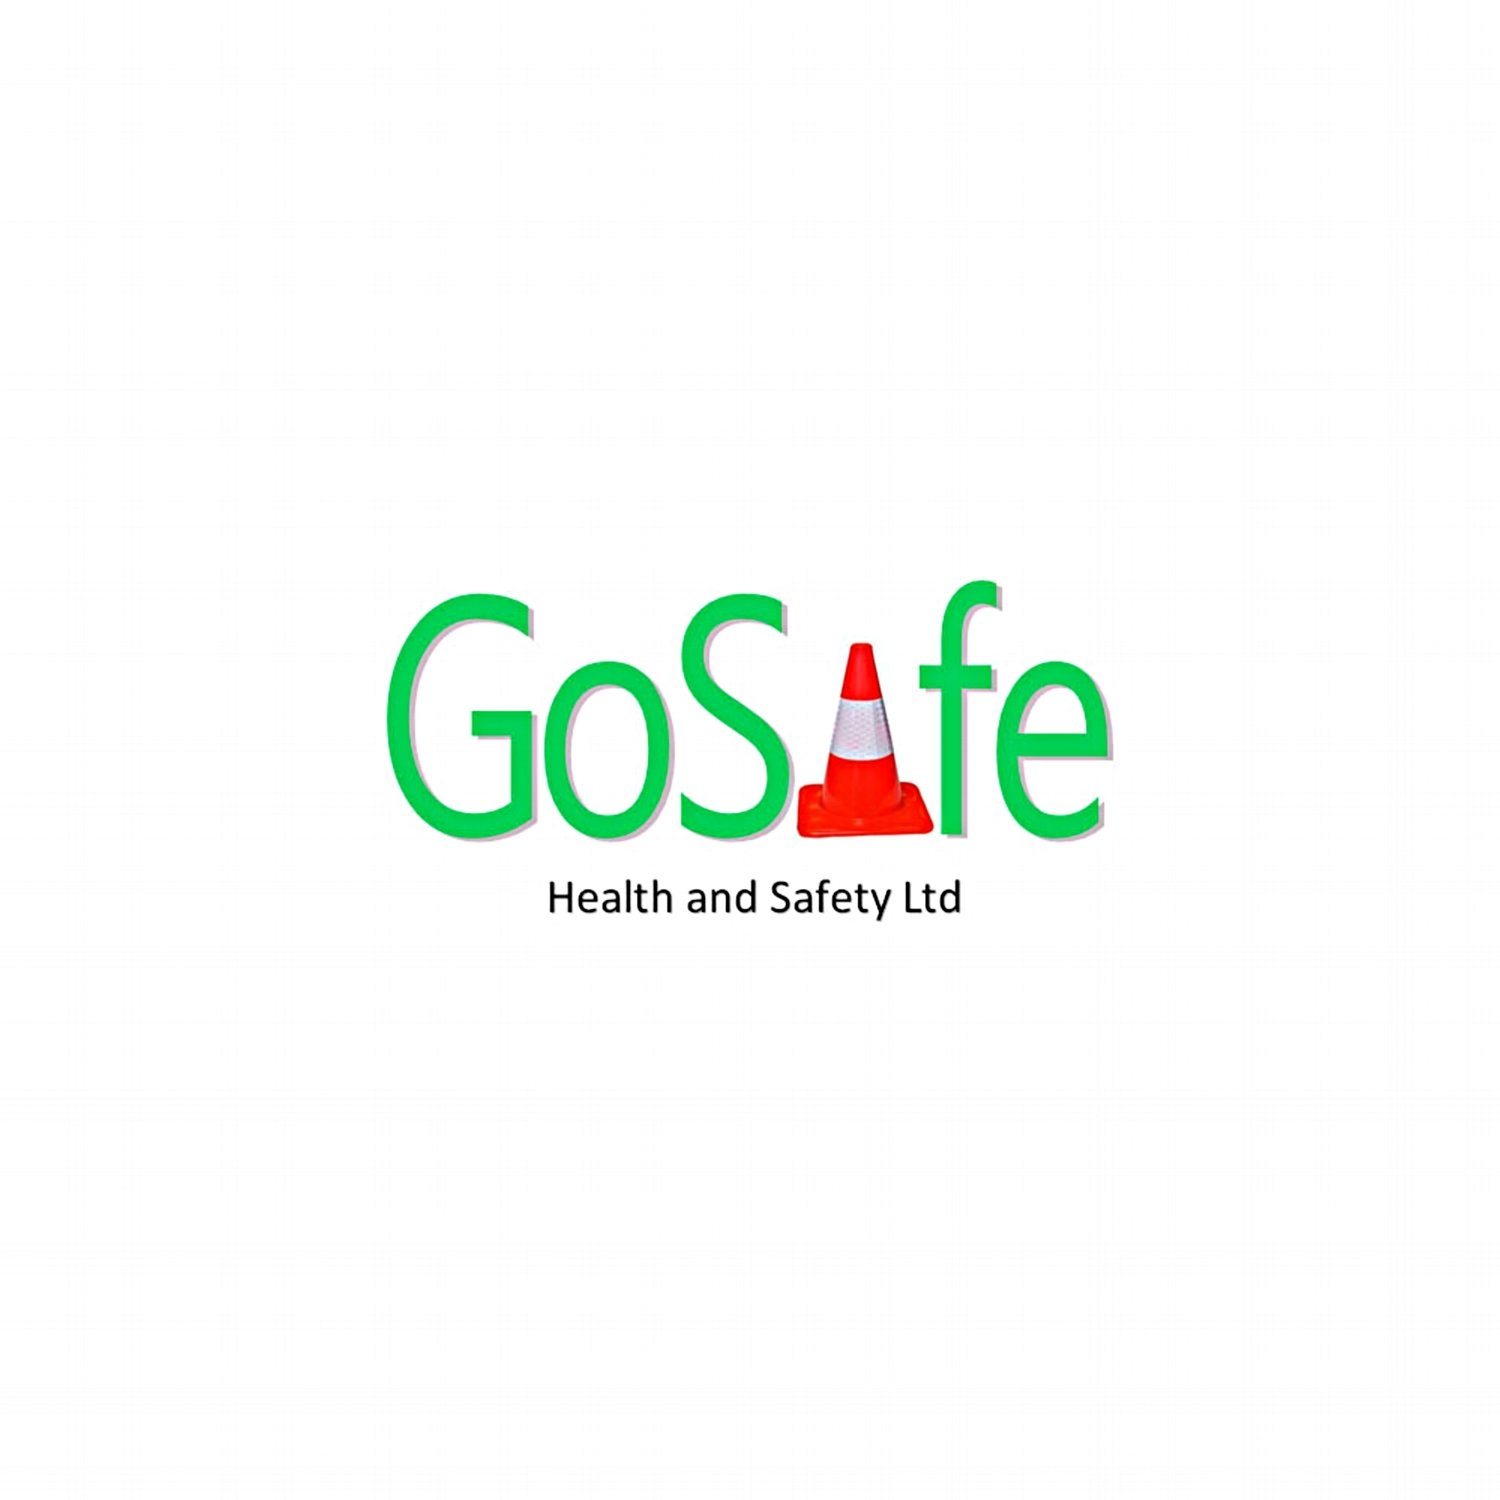 GoSafe Health and Safety Limited